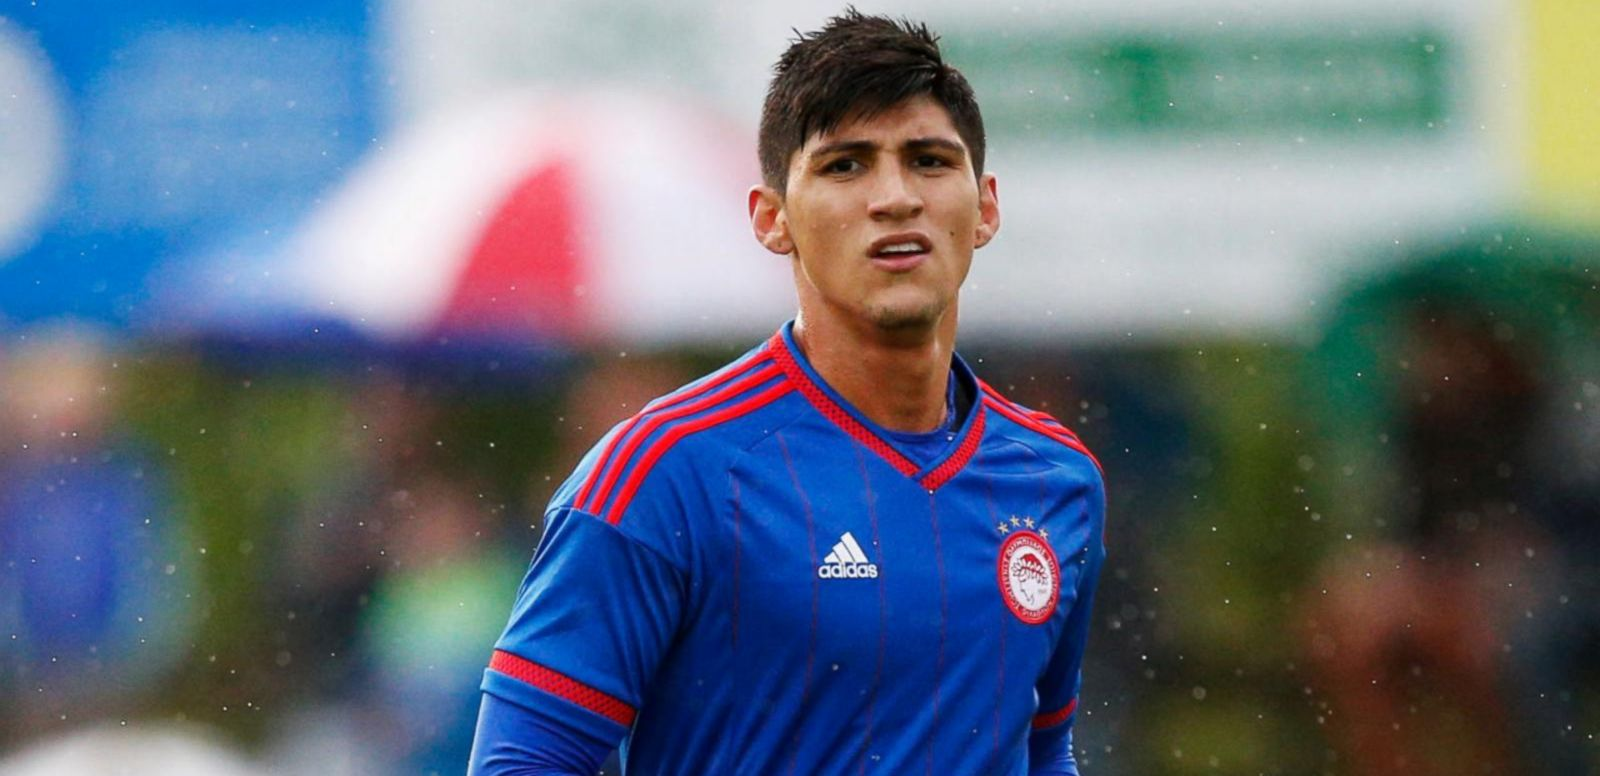 VIDEO: Index: Soccer Star Alan Pulido, 25, Kidnapped In Mexico